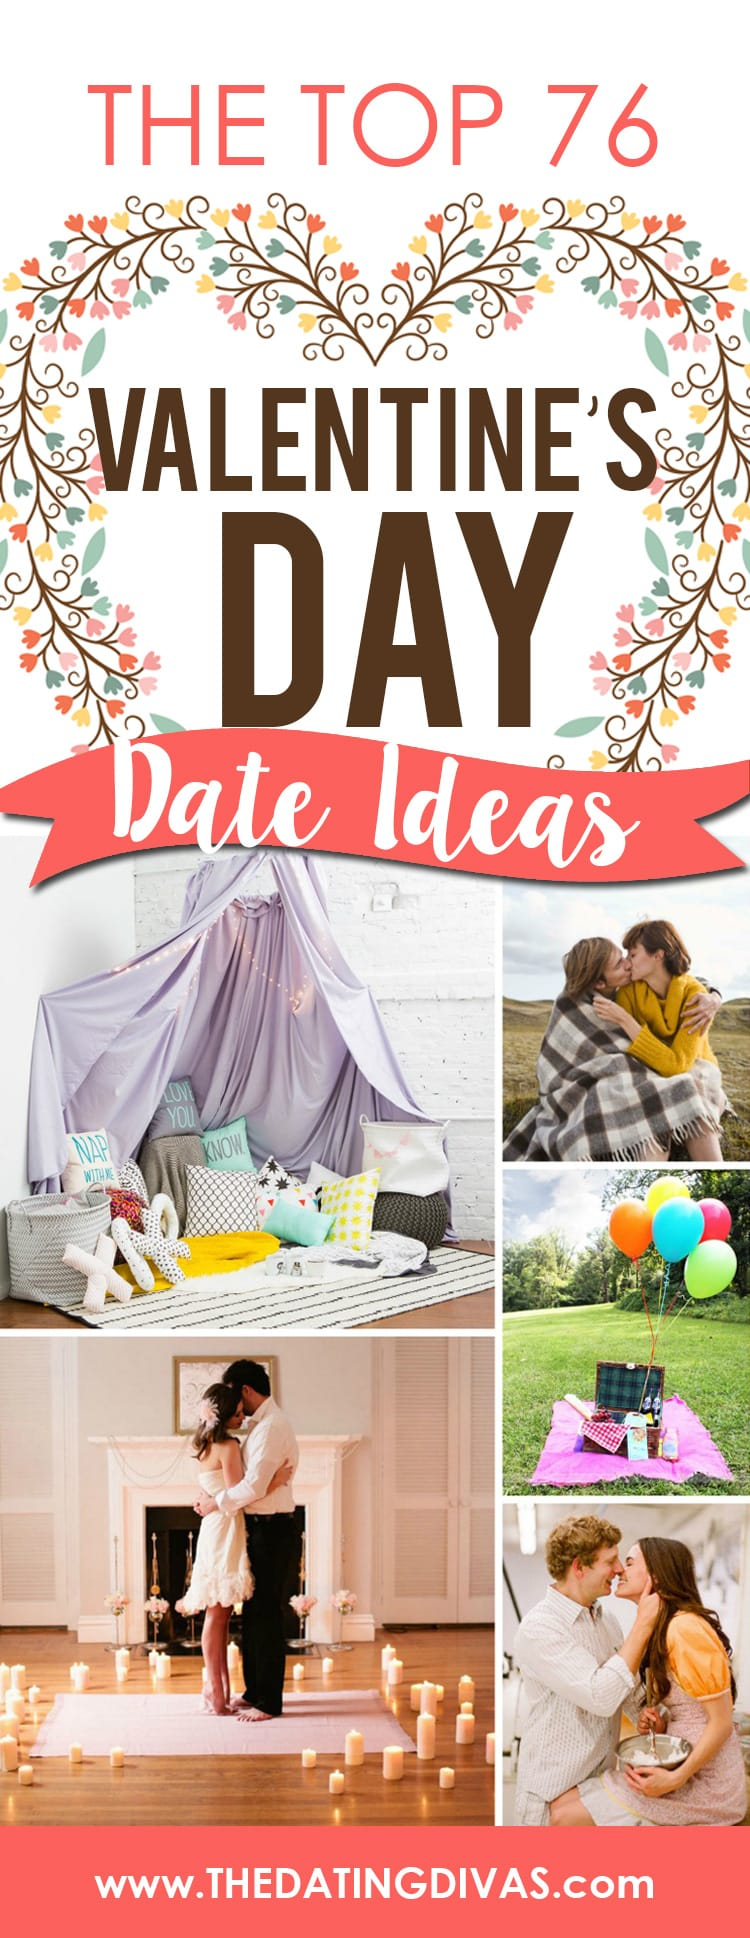 the top valentine's day date ideas - from the dating divas